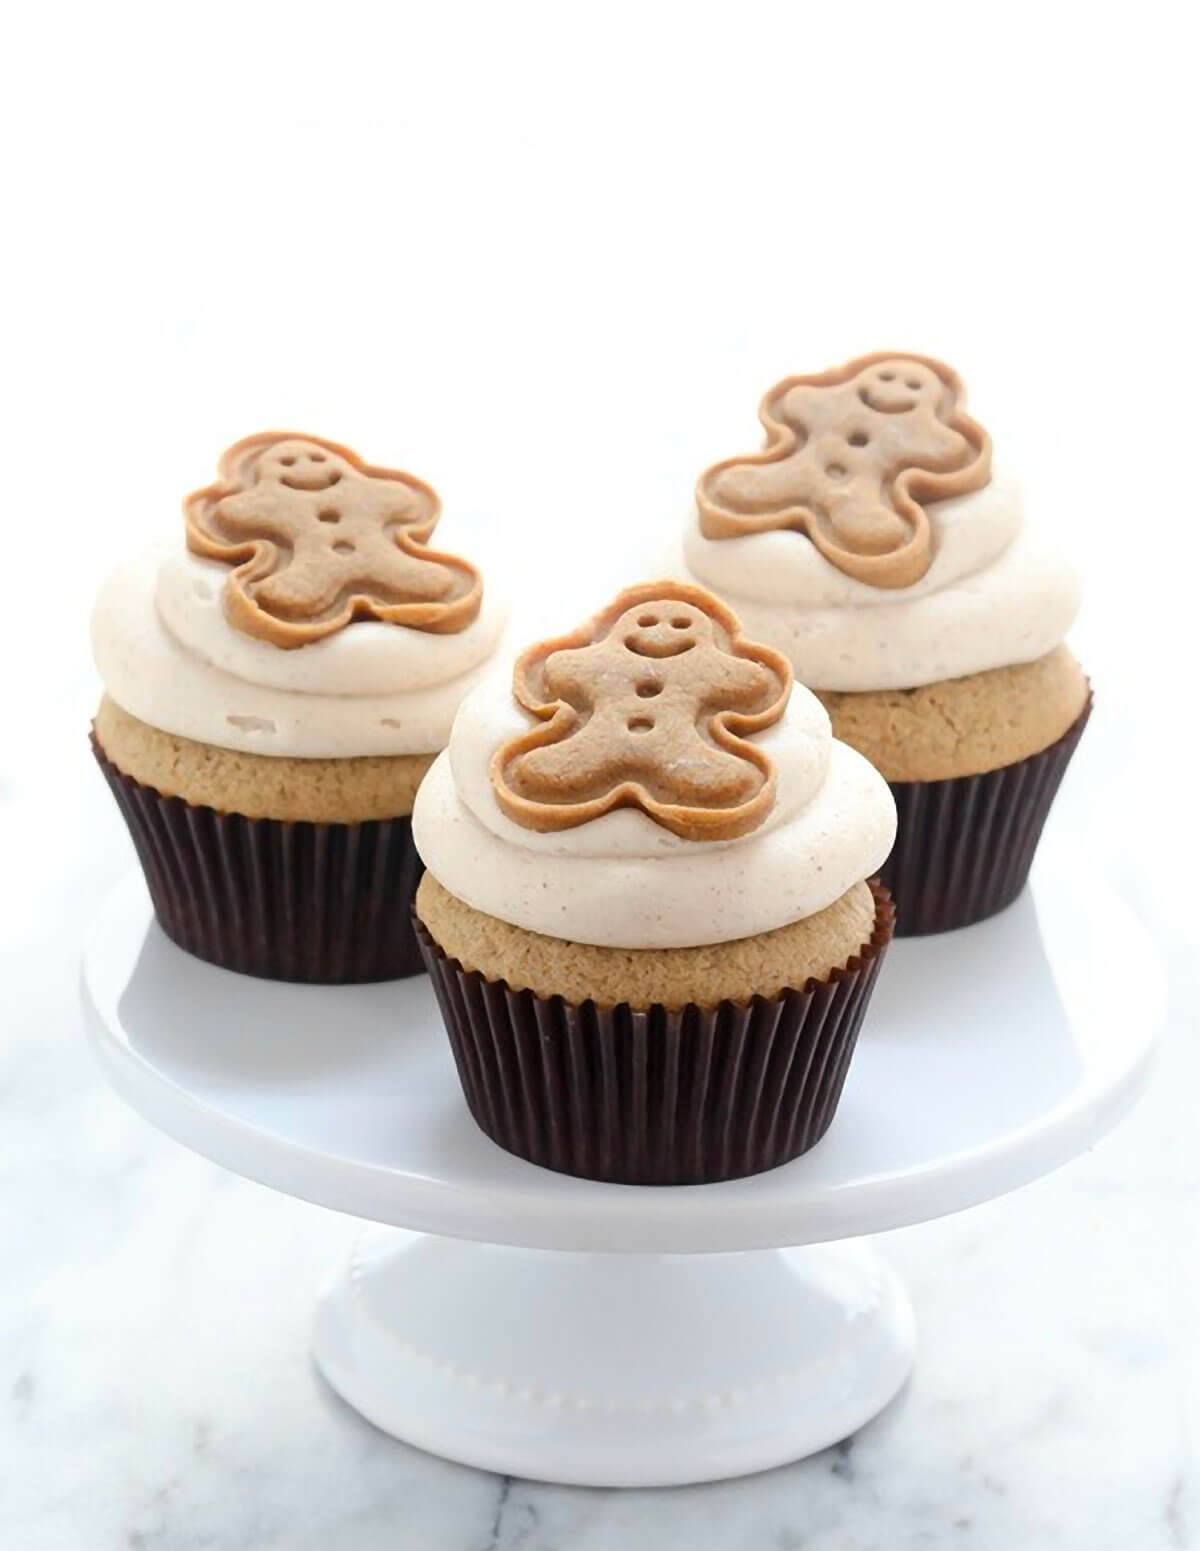 Gingerbread Cupcakes with Brown Sugar